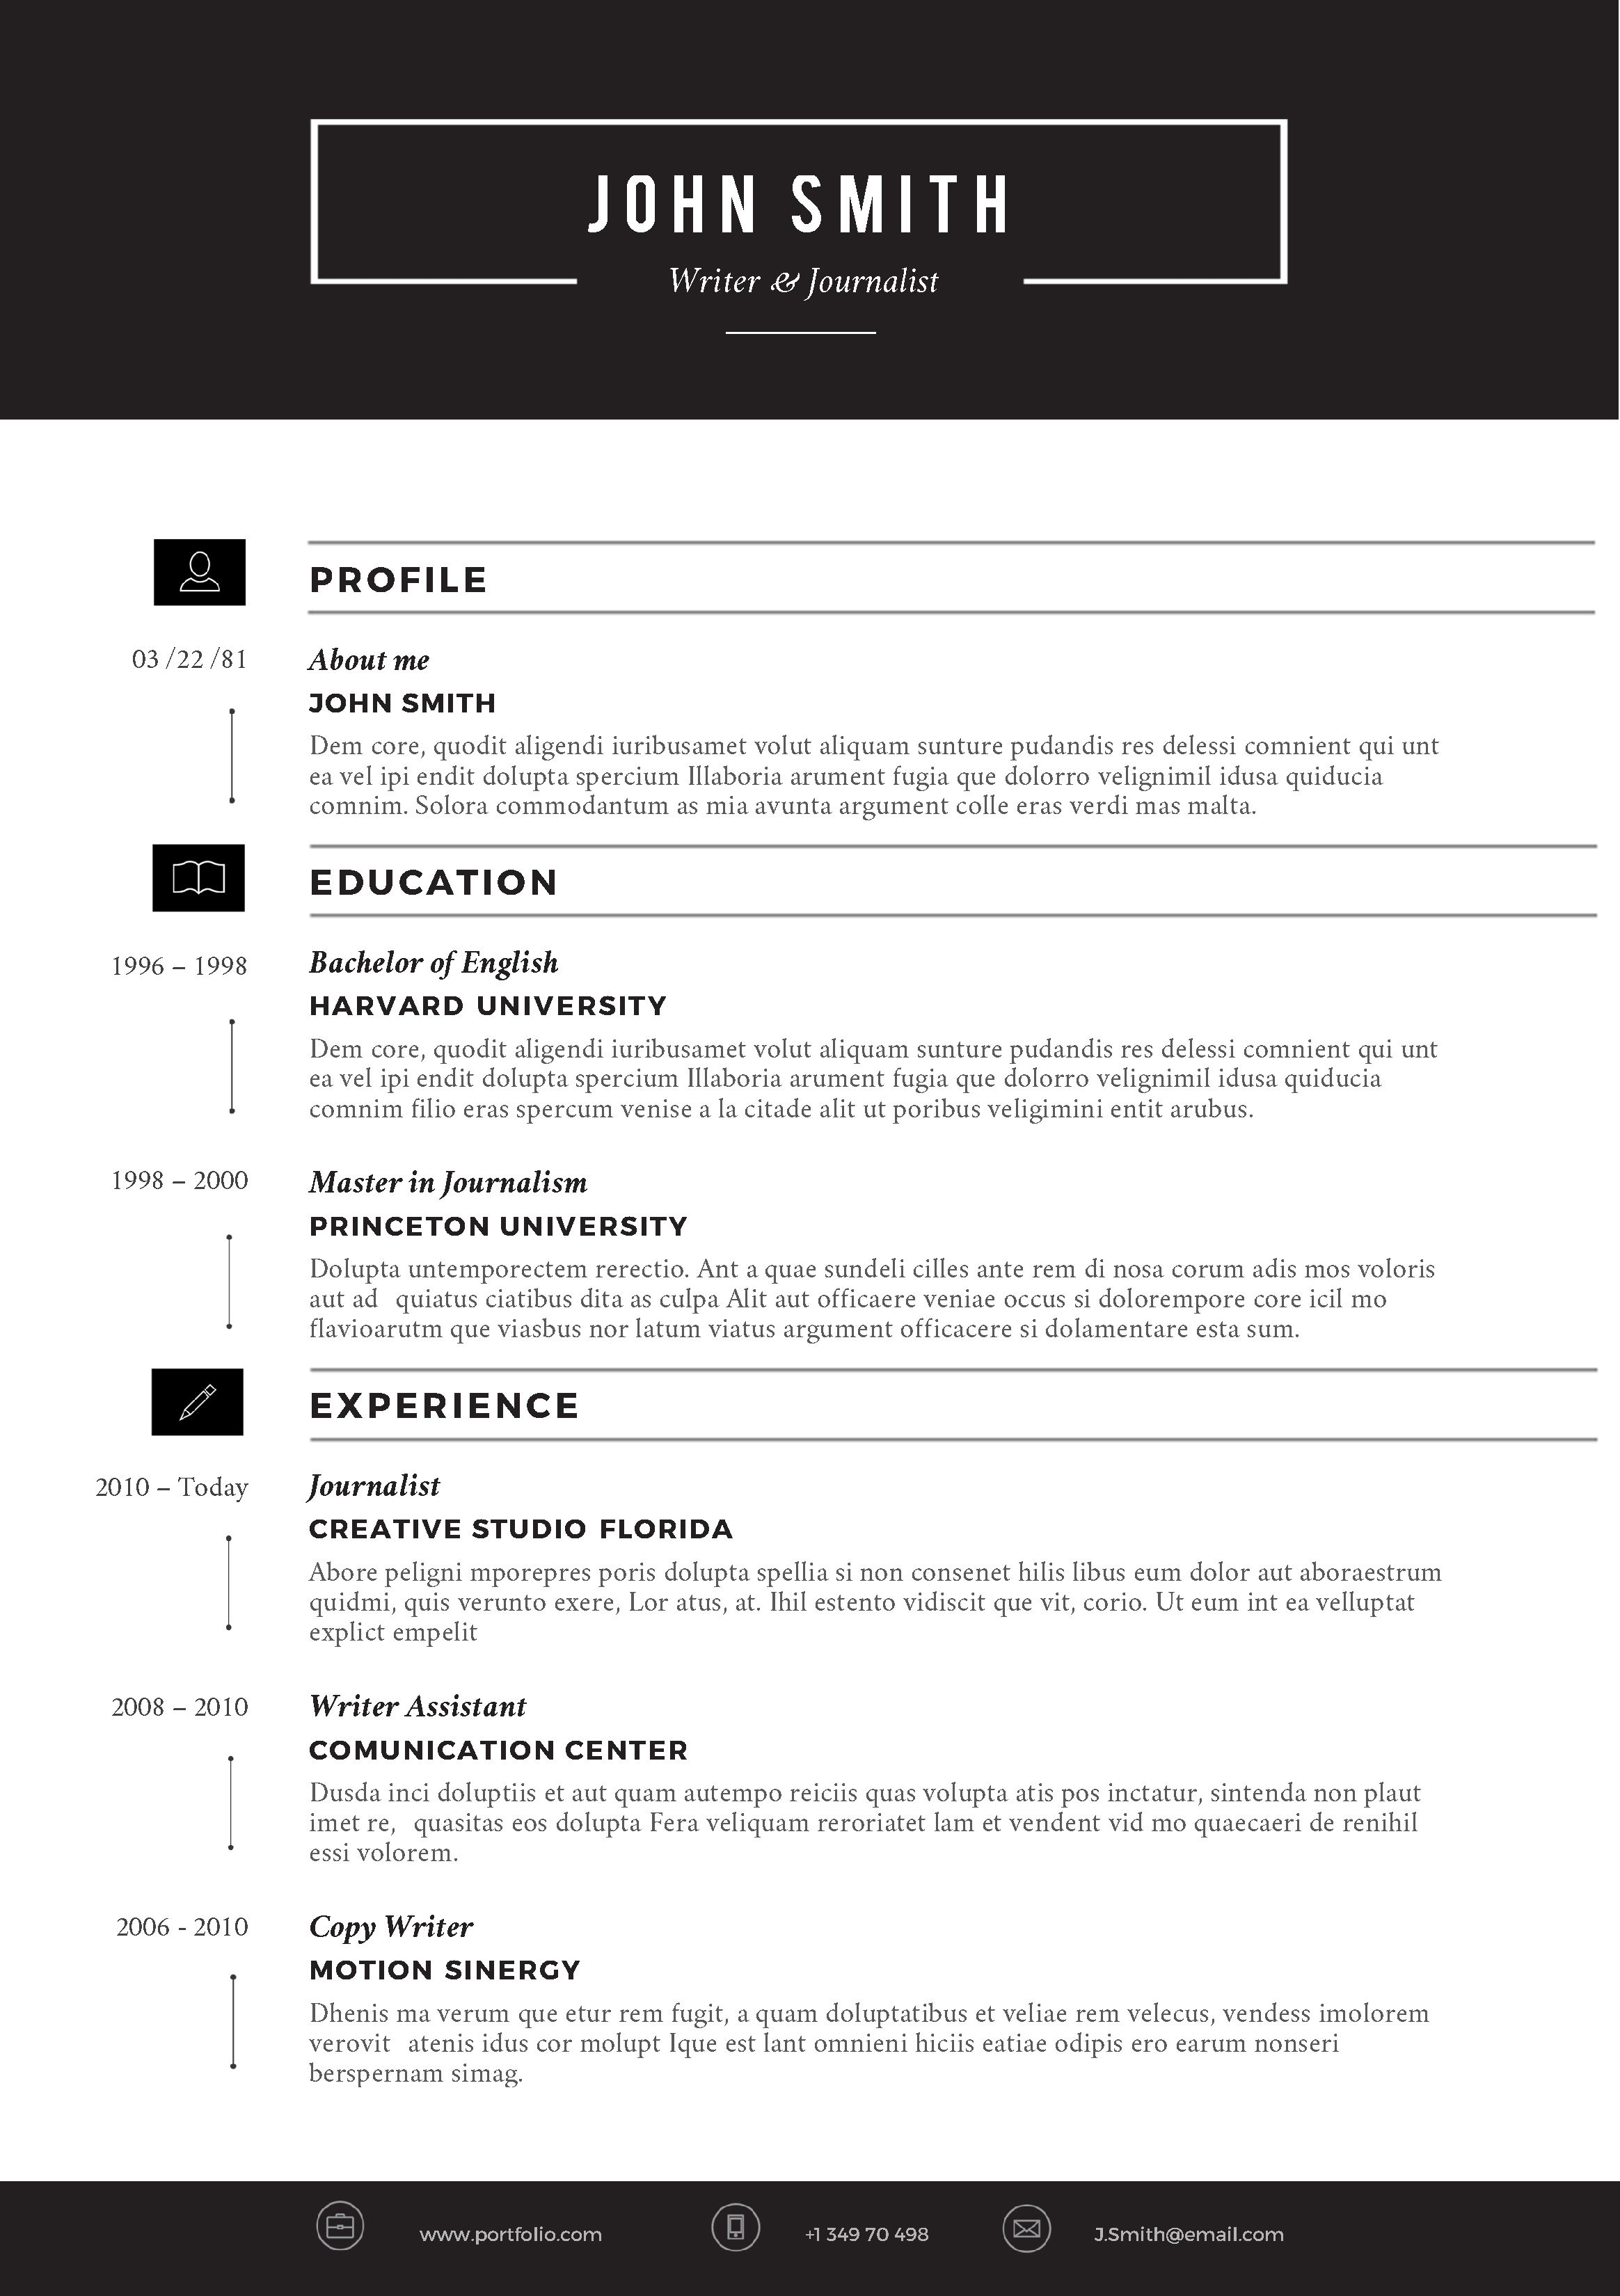 sleek resume template 10$ trendy resumes beaux cv